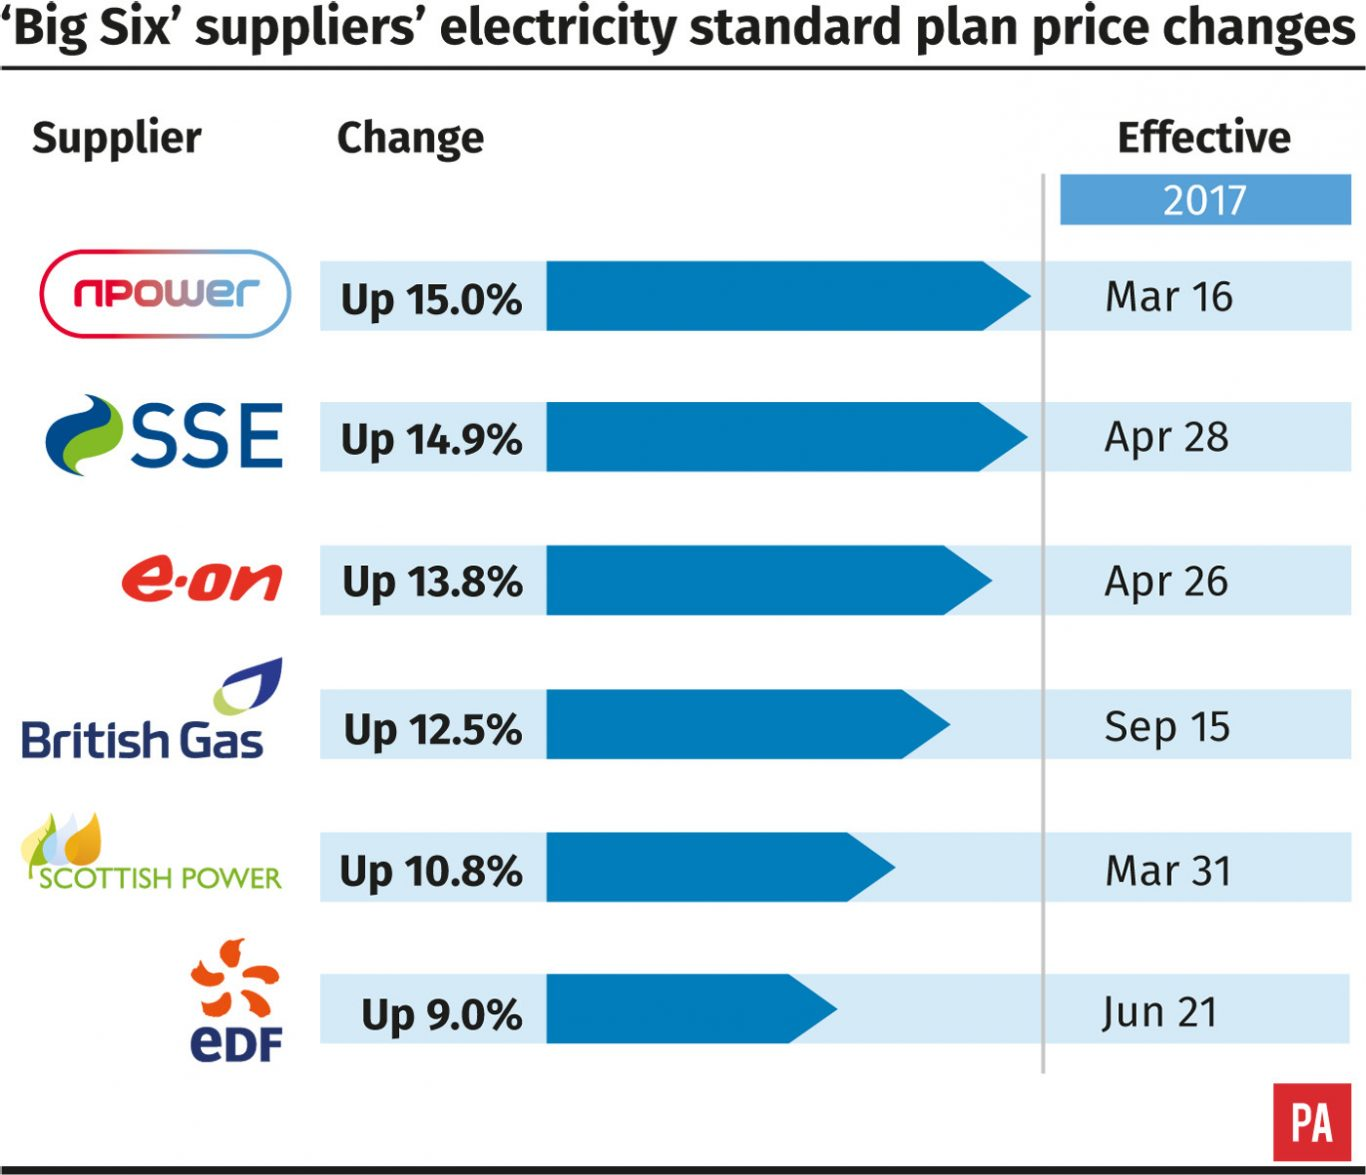 'Big Six' suppliers' electricity standard plan price changes.